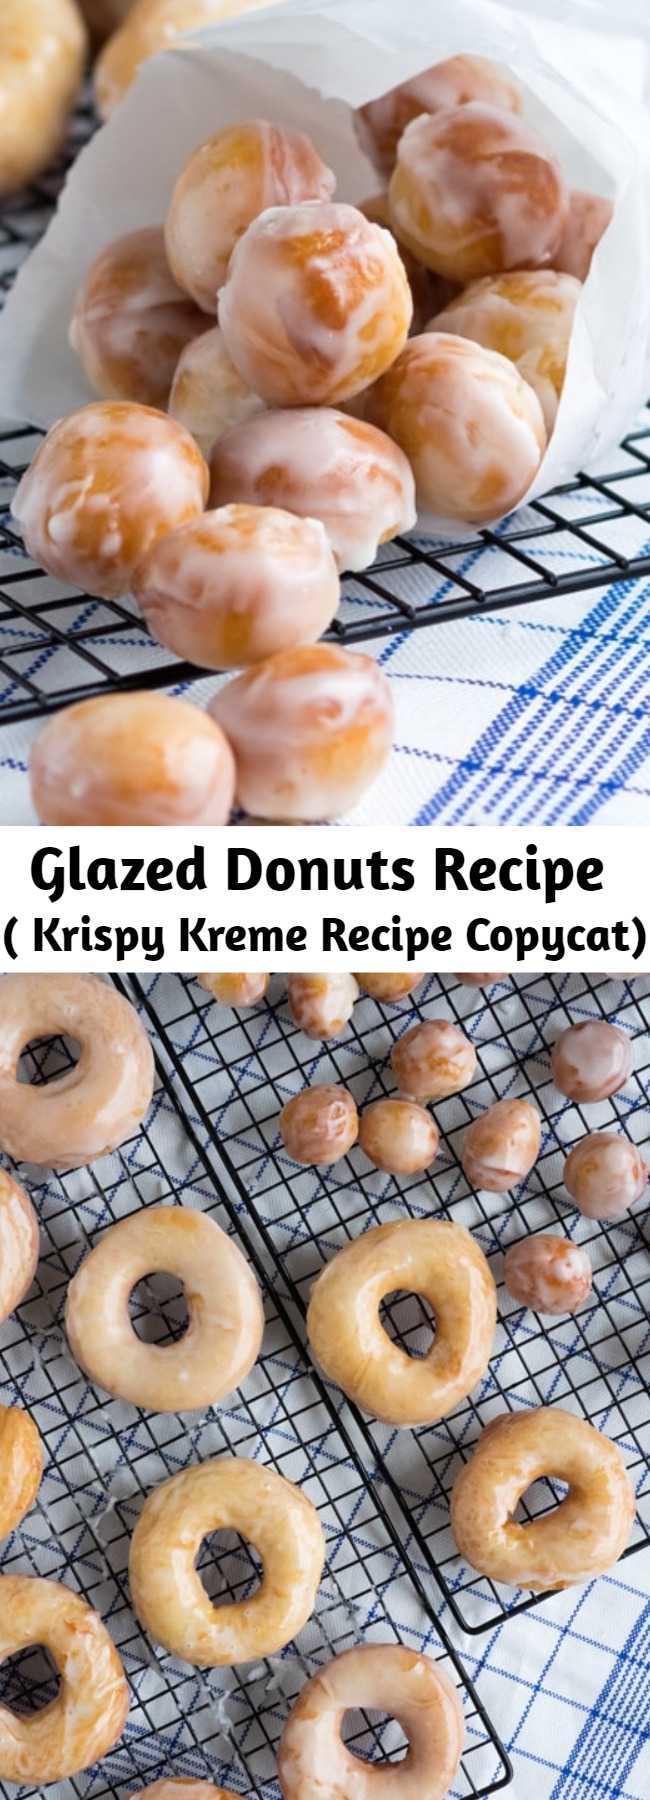 Glazed Donuts Recipe ( Krispy Kreme Recipe Copycat) - These original glazed donuts are light and chewy and a good way to get anyone out of bed in the morning. Who can resist a Krispy Kreme recipe copycat?